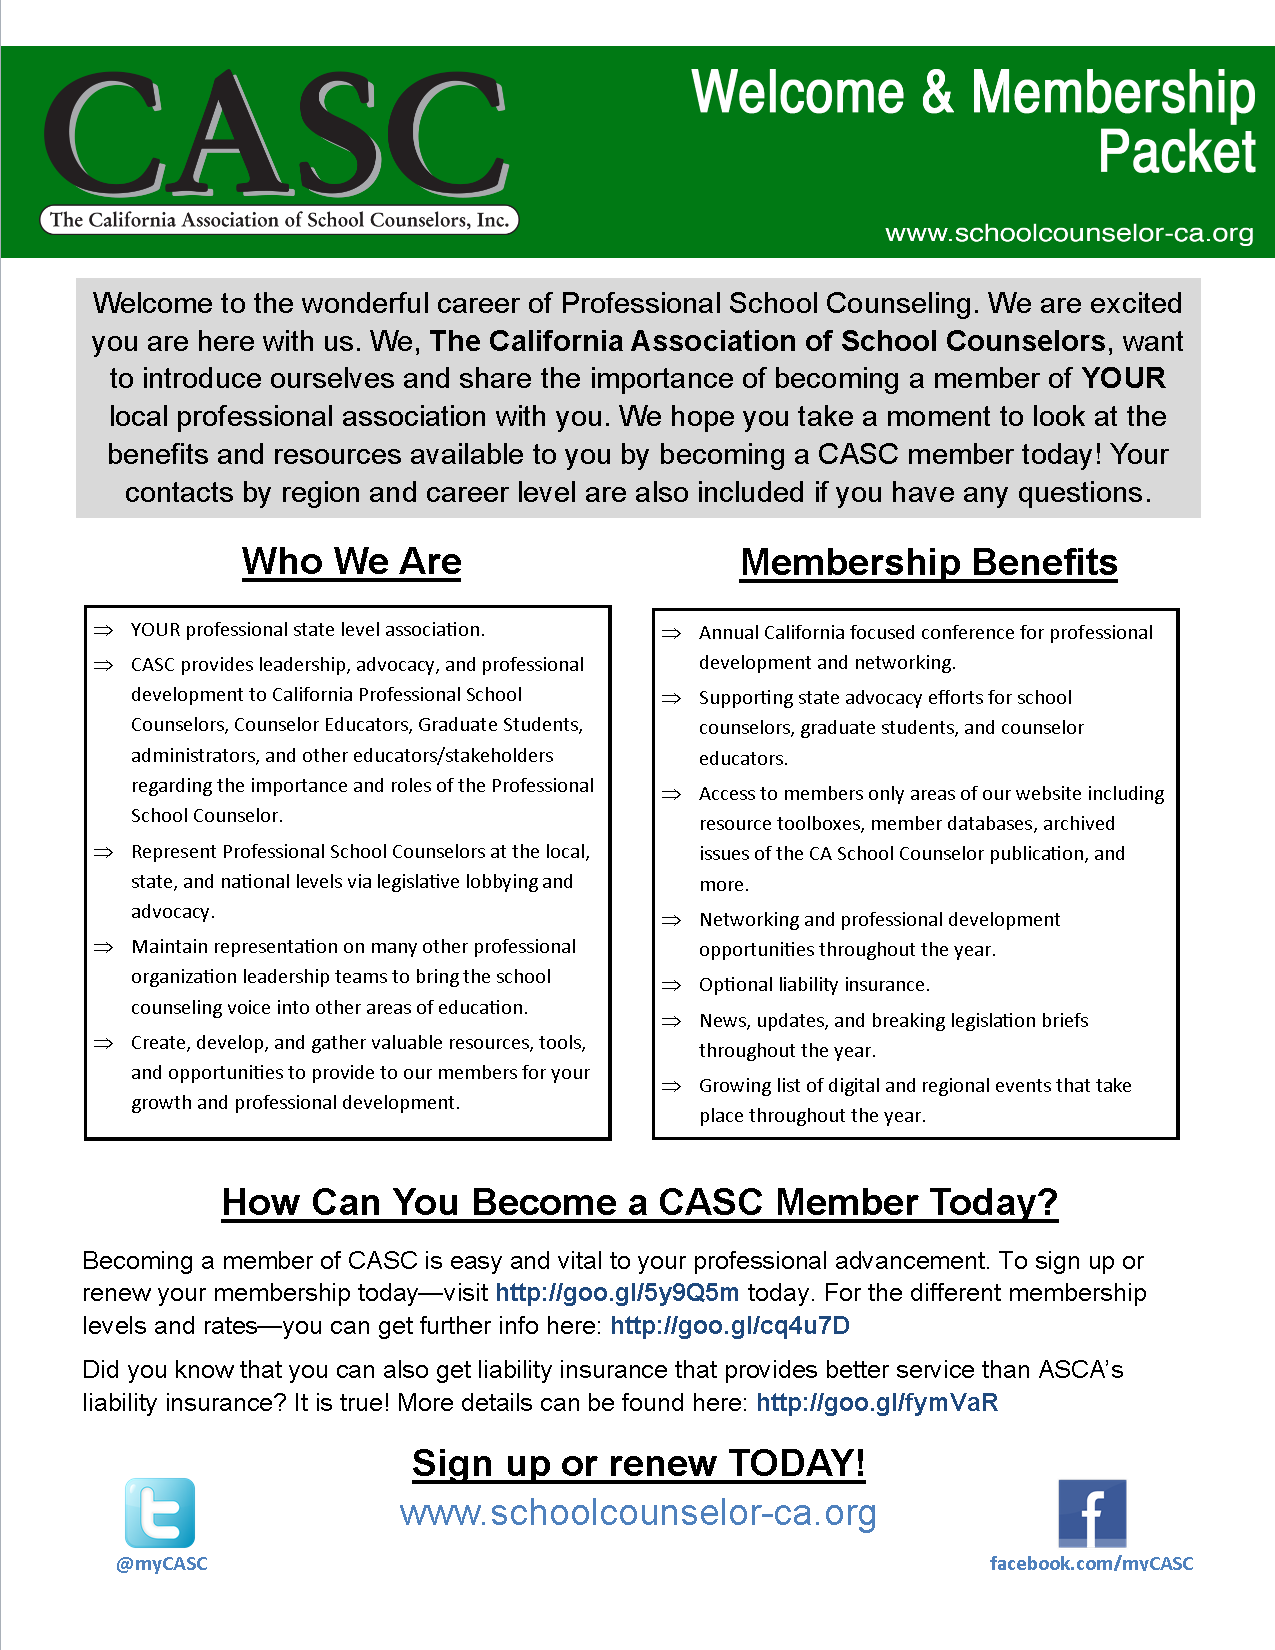 CASC membership packet